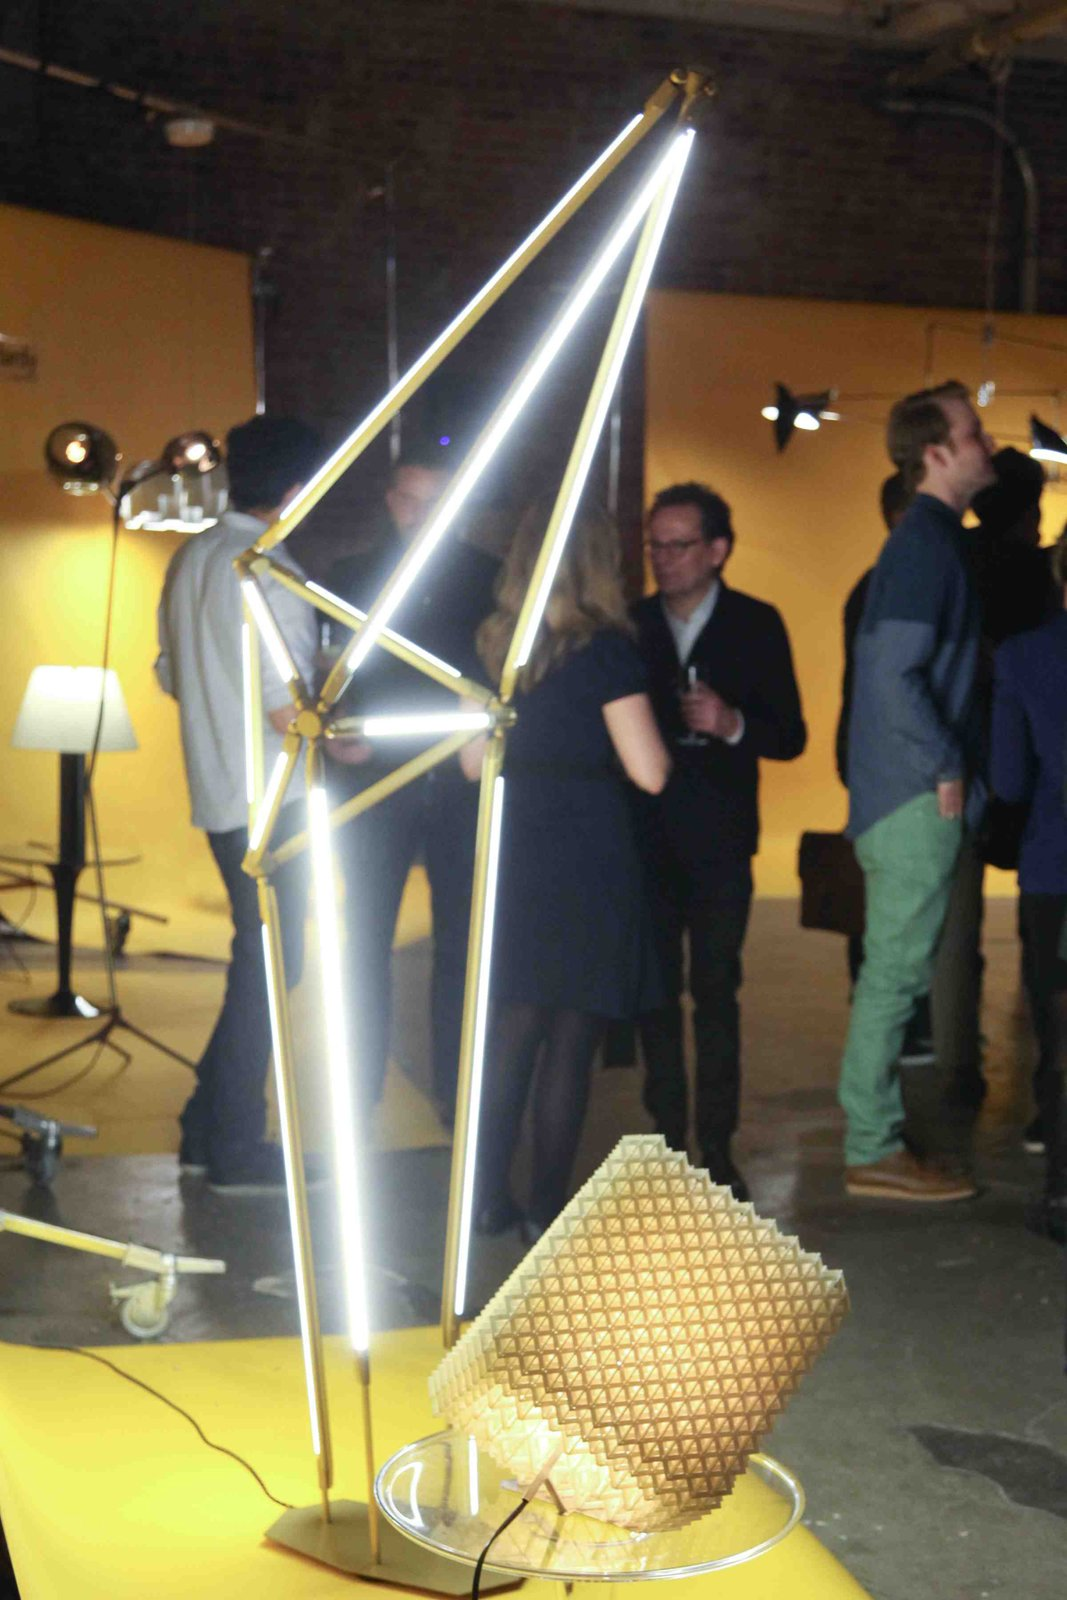 Bec Brittain presented her new SHY Floor lamp (left) and Dror Benshetrit his 3D printed QuaDror light (right), which folds flat and is currently on exhibition at Material ConneXion in New York.  Photo 16 of 22 in Dwell Light & Energy Issue Launch